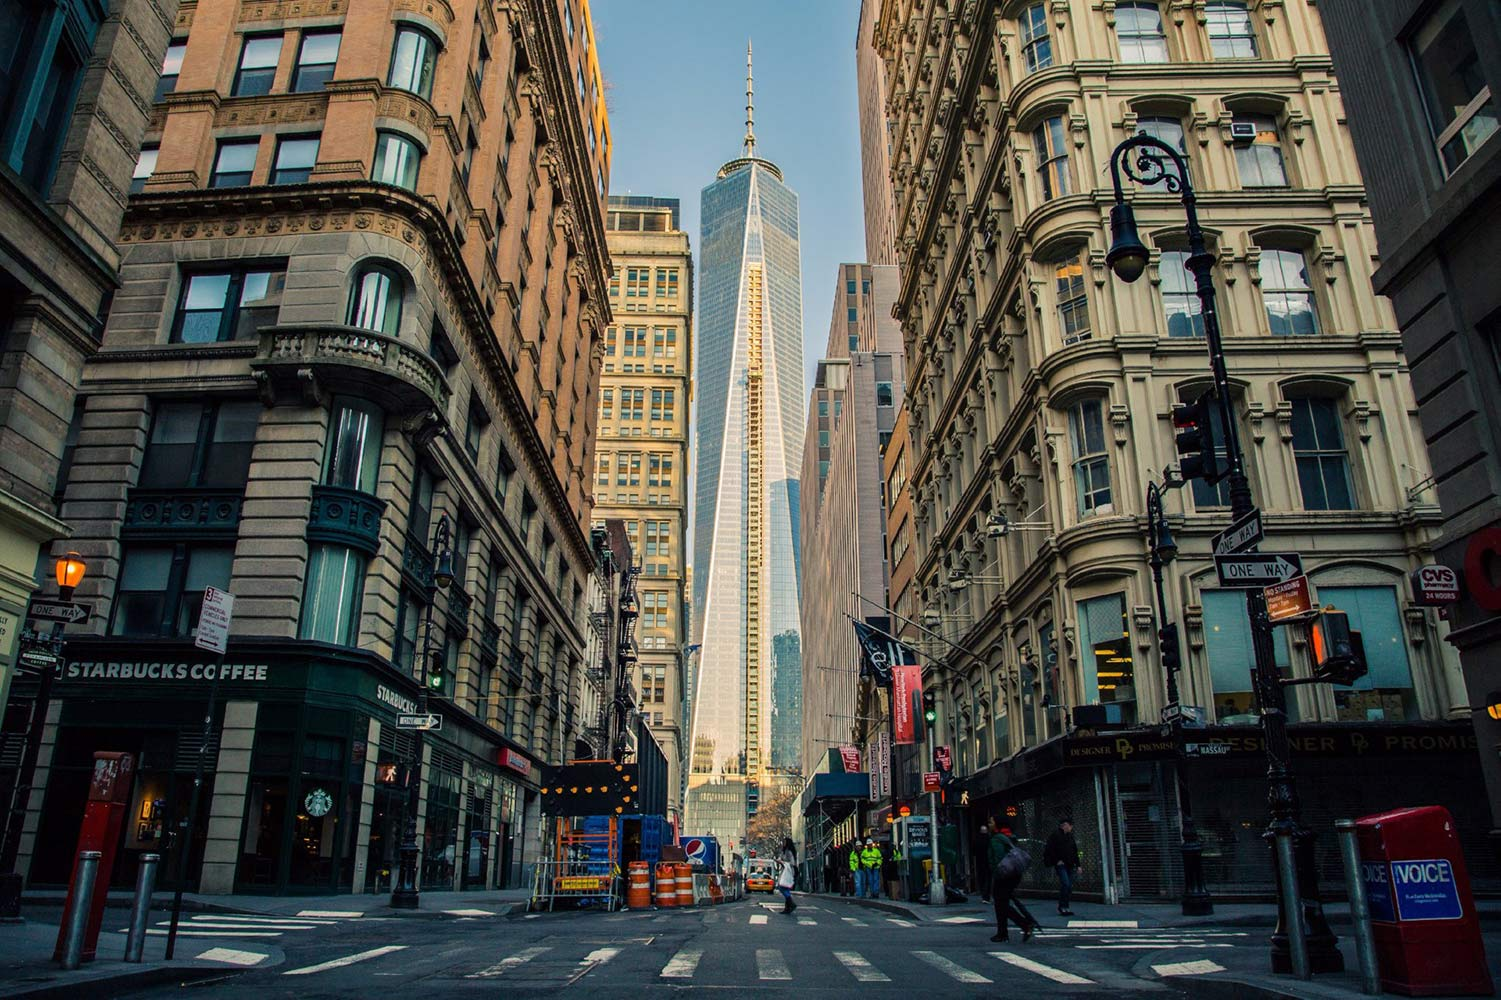 NYC street with Freedom Tower